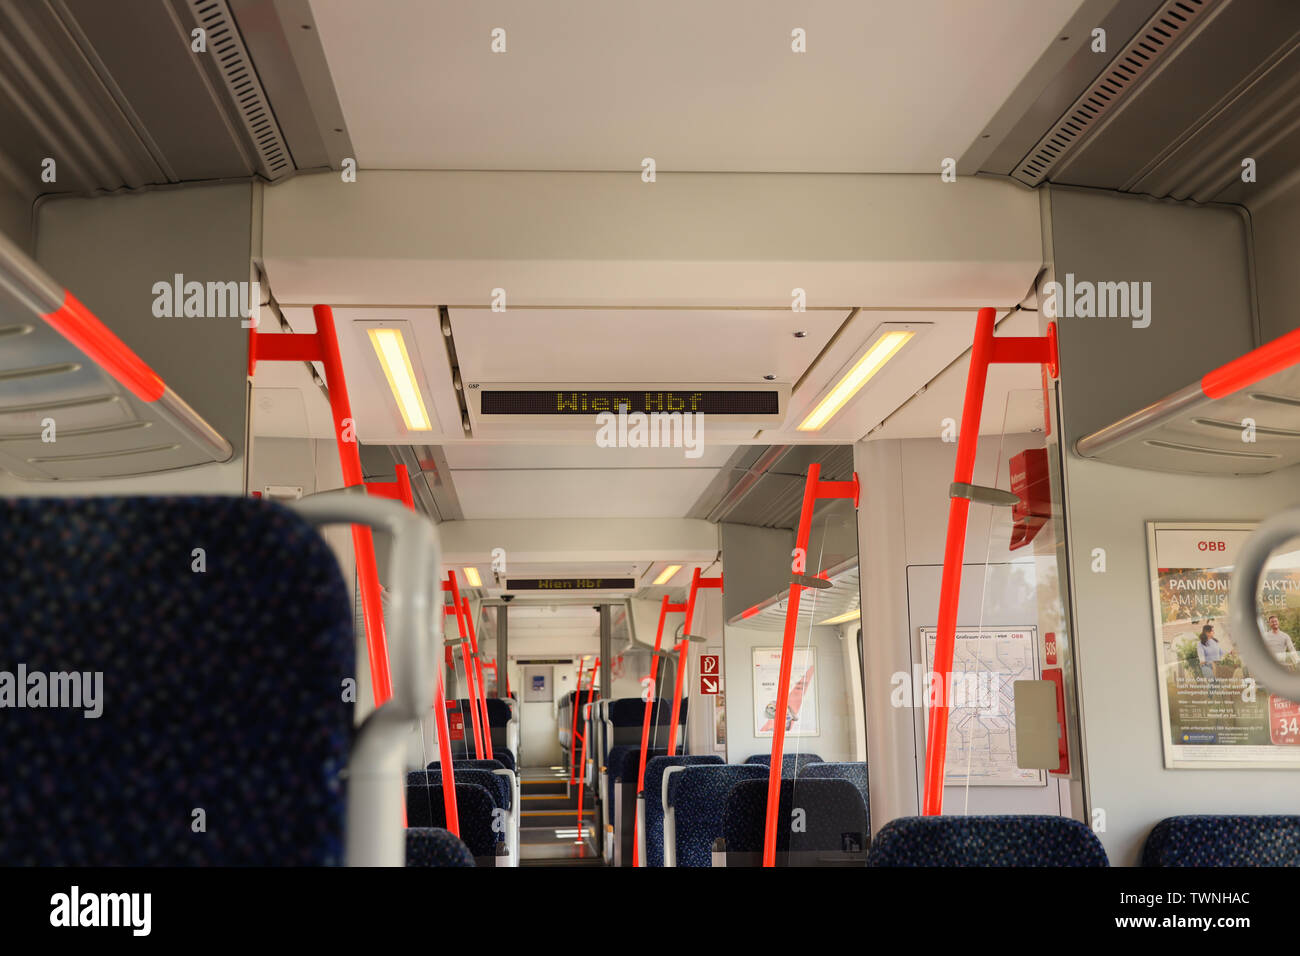 Inside of a regional Austrian train that commutes from Eisenstadt to Vienna. The commuted train is operated by OEBB (Austrian Railways) - Stock Image